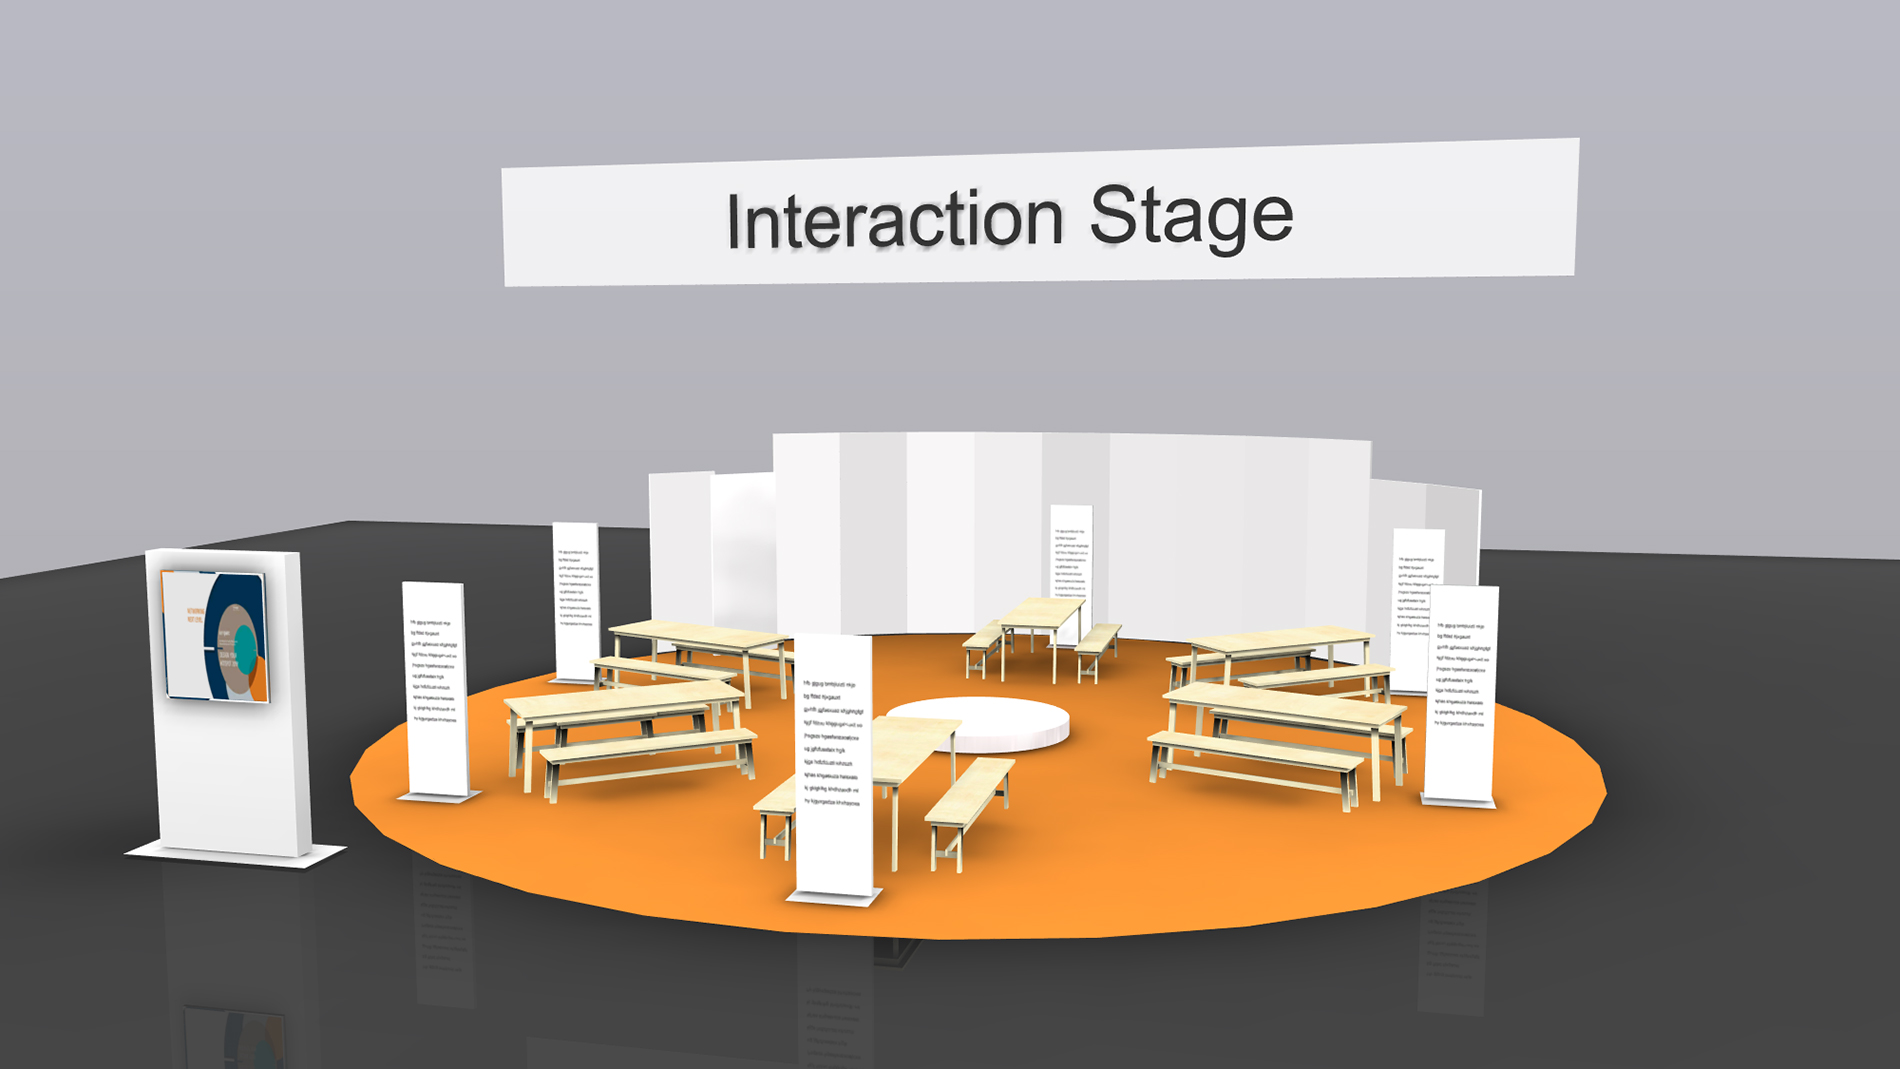 Interaction Stage